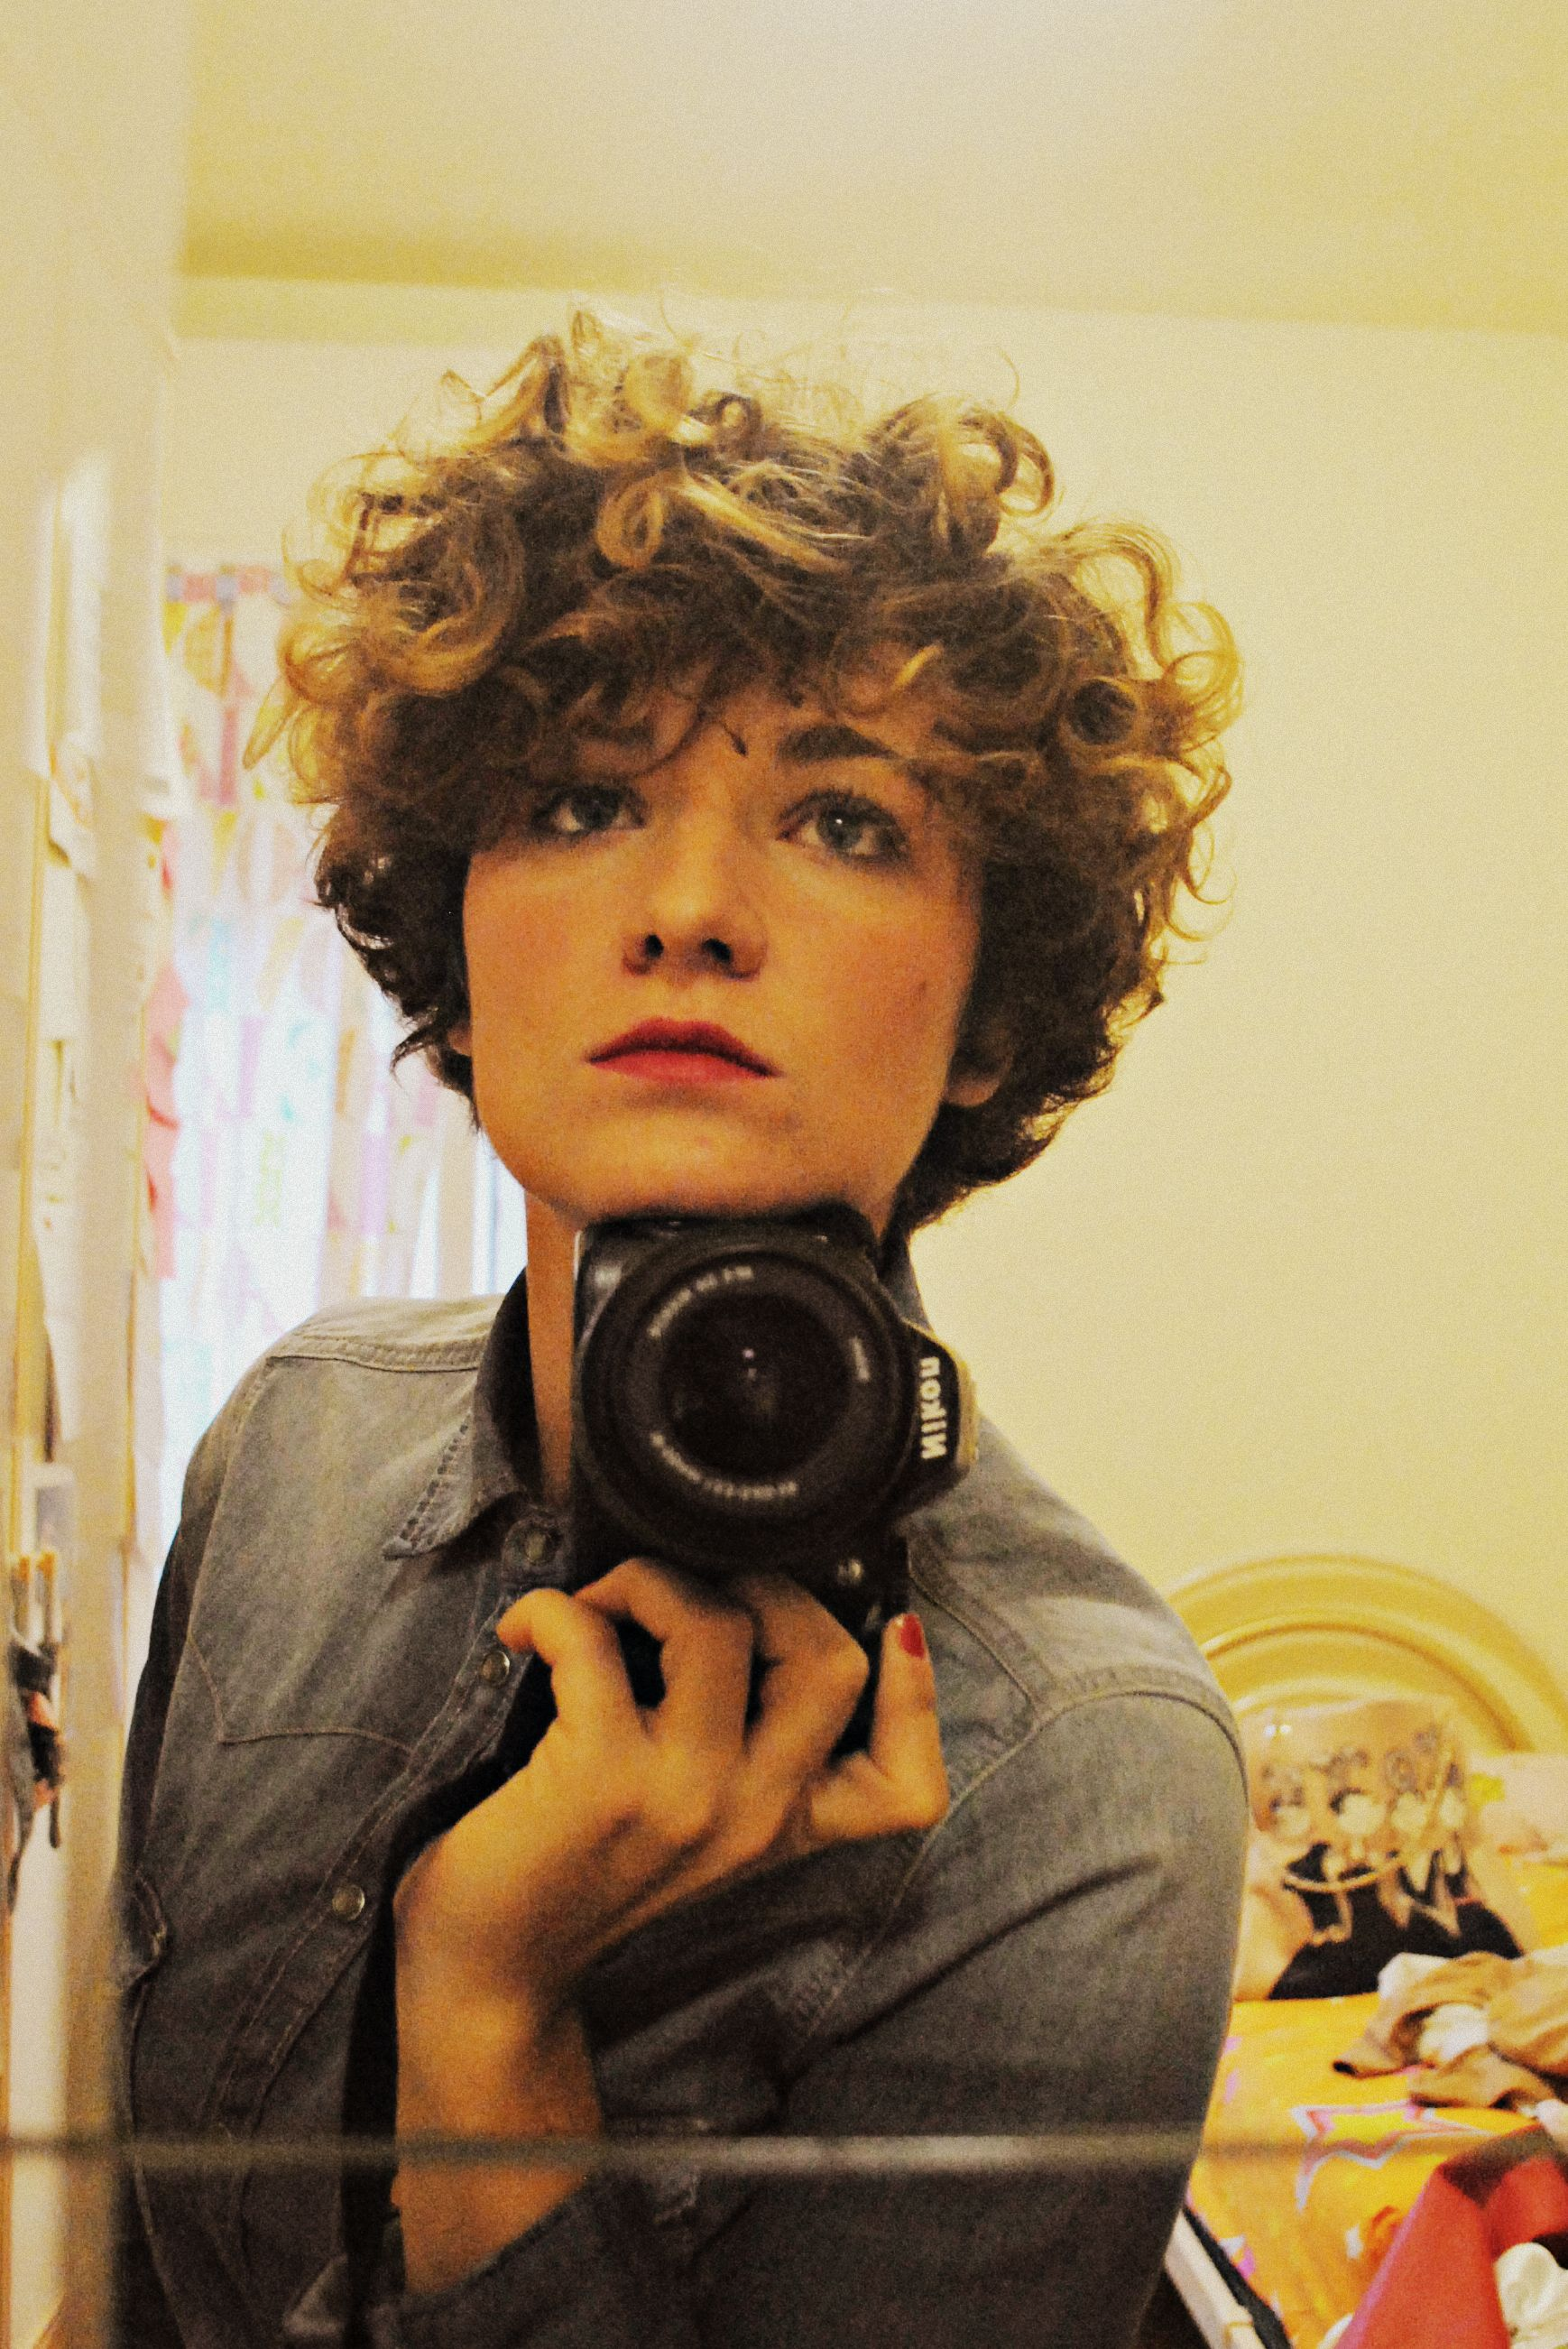 Short Curly Hair What My Curls Would Look Like Short Curls